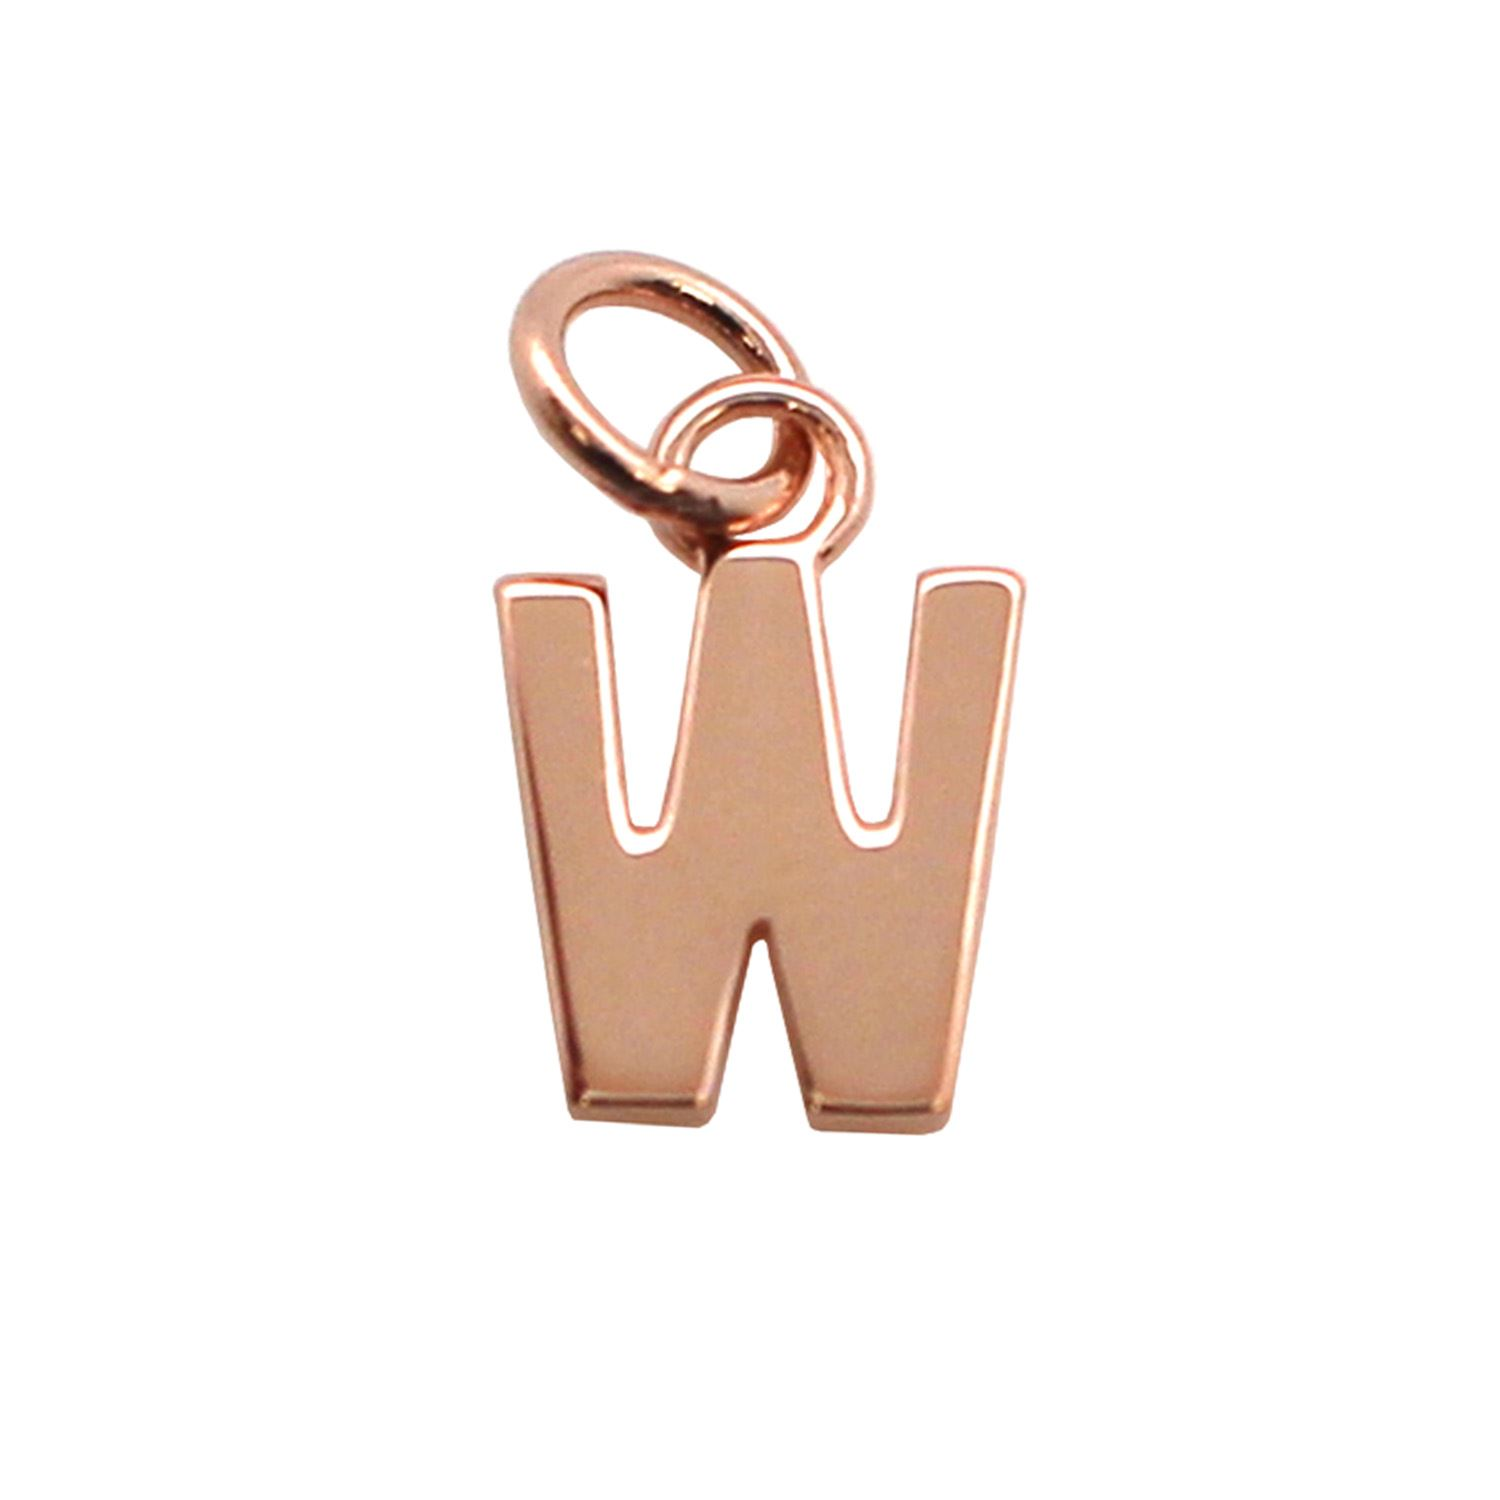 Smooth Rose Gold Plated over Sterling Silver Letter Charms - A-Z Letter Pendant